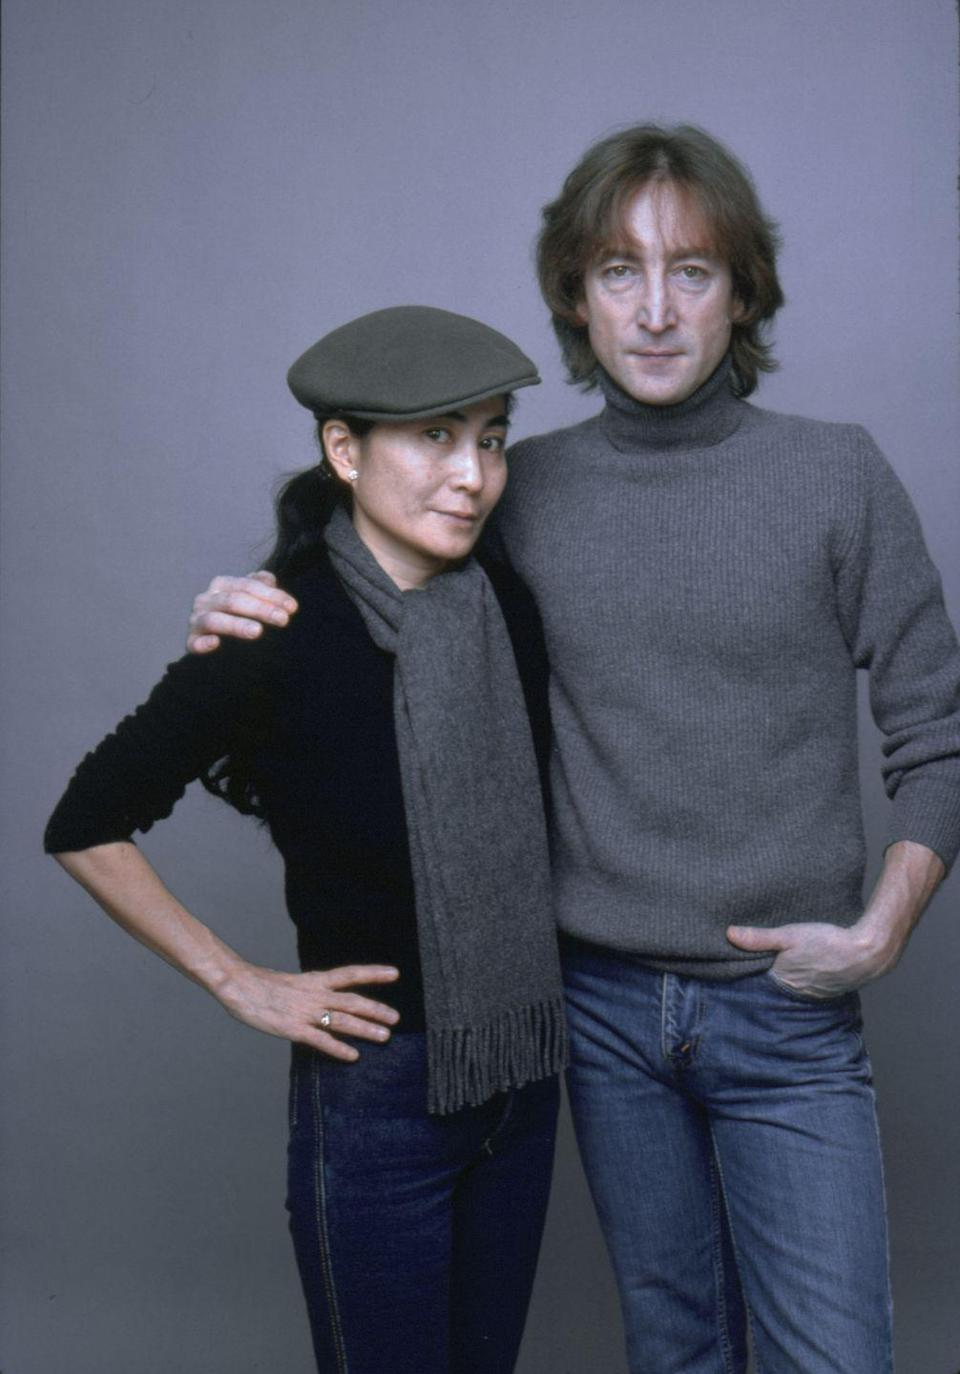 "<p>Many people have long accused Yoko Ono of breaking up The Beatles, regardless of whether it's true or not. Unfortunately for Yoko, some <a href=""https://www.quora.com/Why-do-most-Beatles-fans-dislike-Yoko-Ono"" rel=""nofollow noopener"" target=""_blank"" data-ylk=""slk:fans have simply never liked her"" class=""link rapid-noclick-resp"">fans have simply never liked her</a>.</p>"